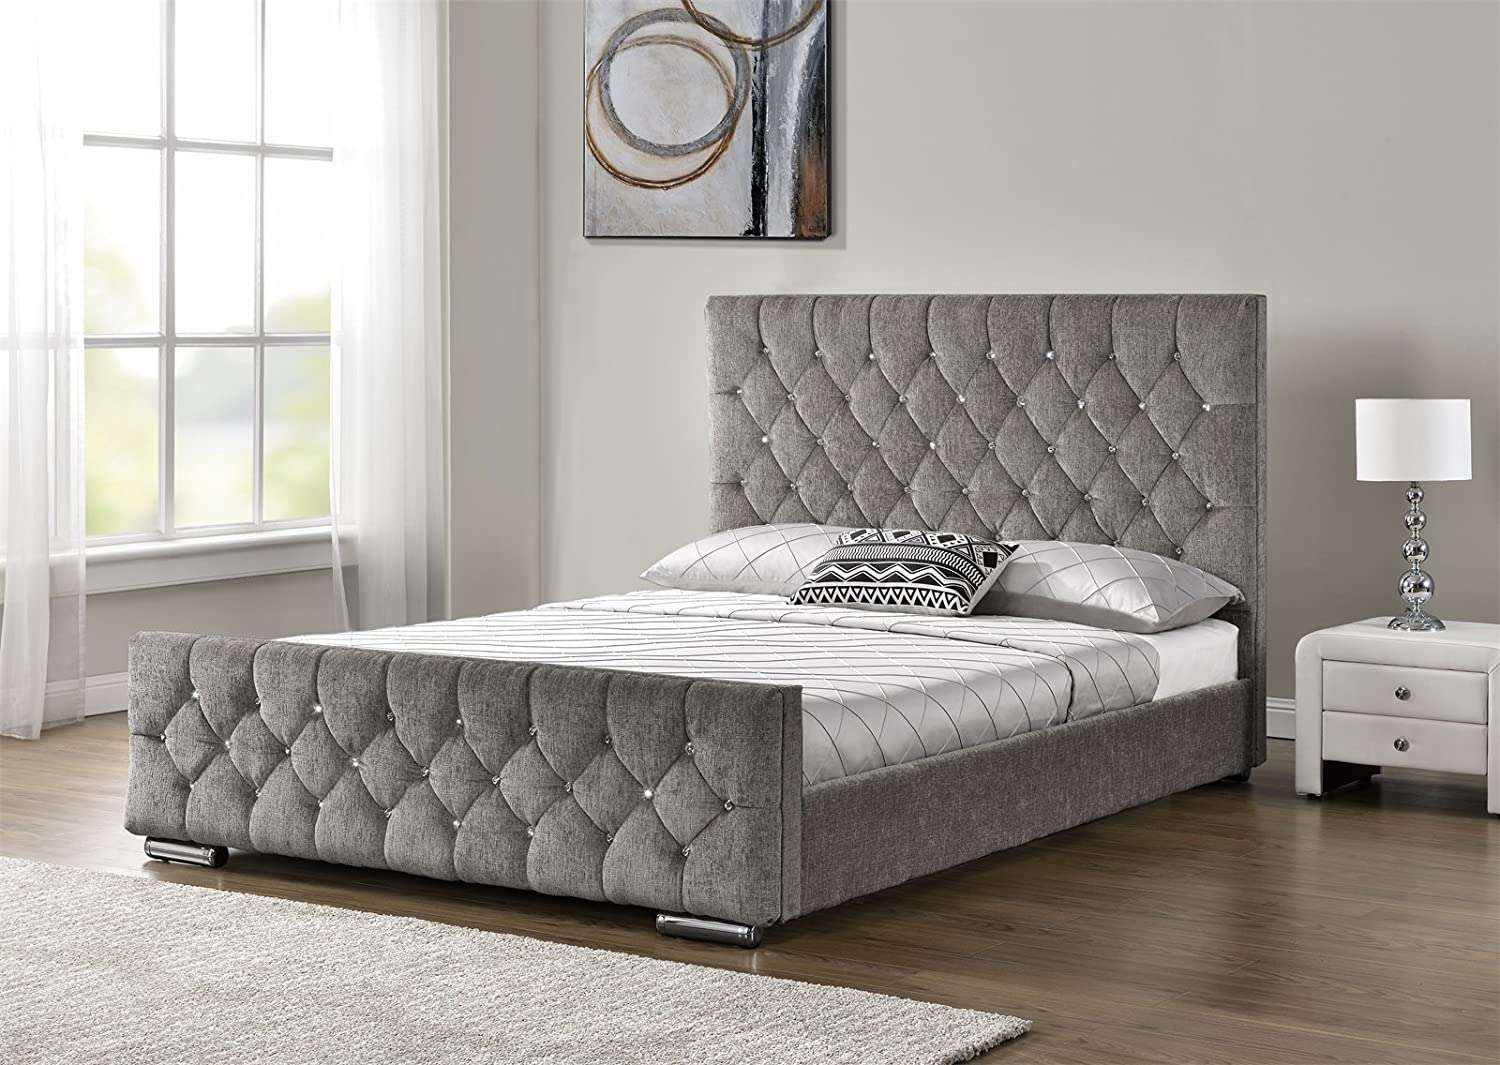 Diamond Upholstered Fabric Bed Frame Velvet Chenille Double Mink, Silver and Charcoal (Silver) Home Detail